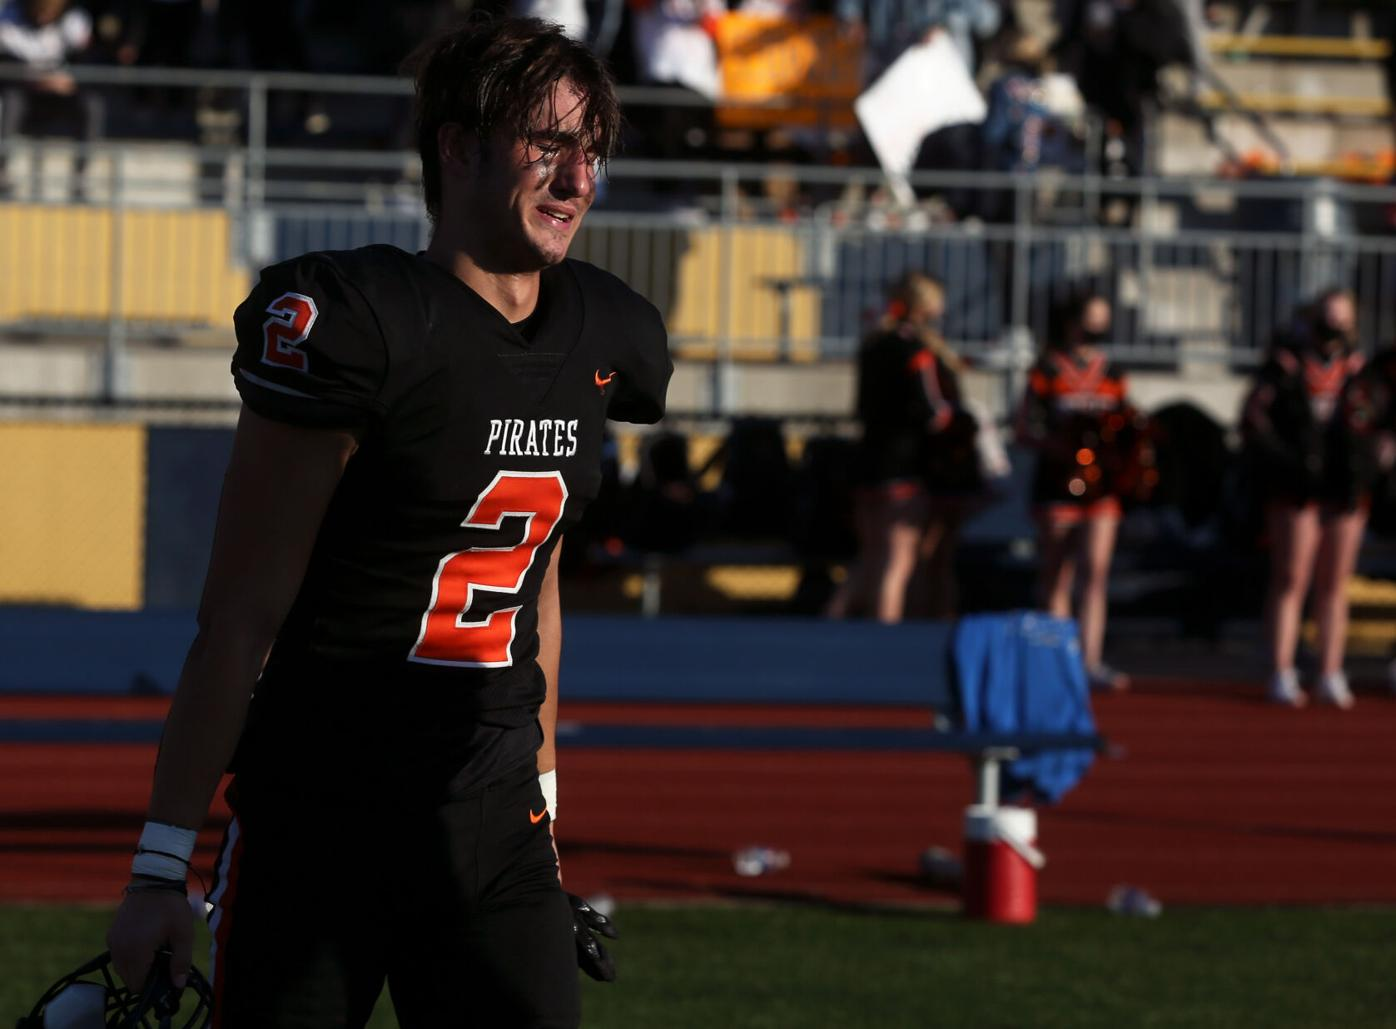 Platte County senior wide receiver Colby Rollins cries